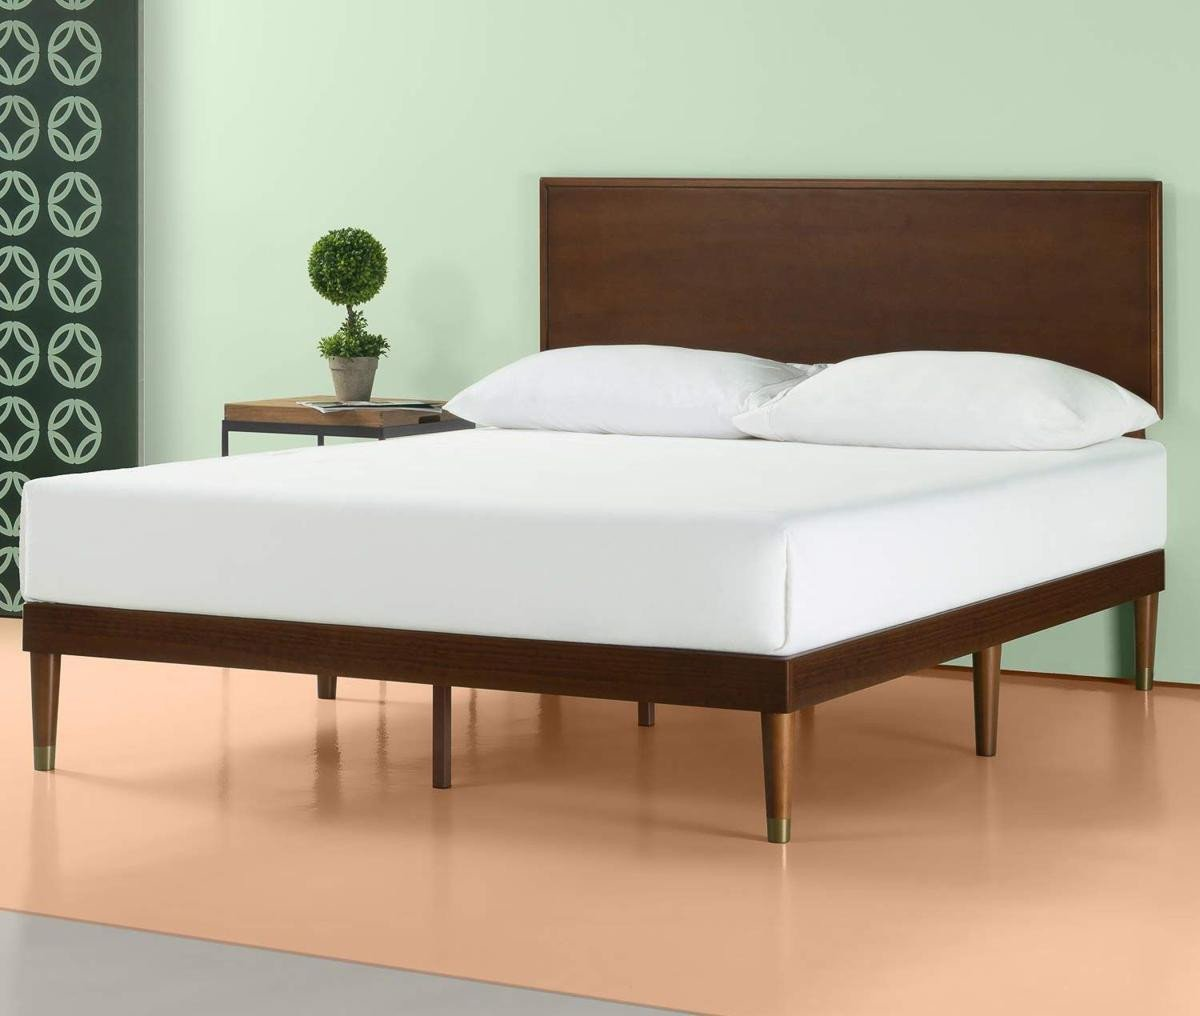 Mid Century Modern Bedroom Furniture Unique Get A West Elm Look for Under $300 with This Mid Century Bed